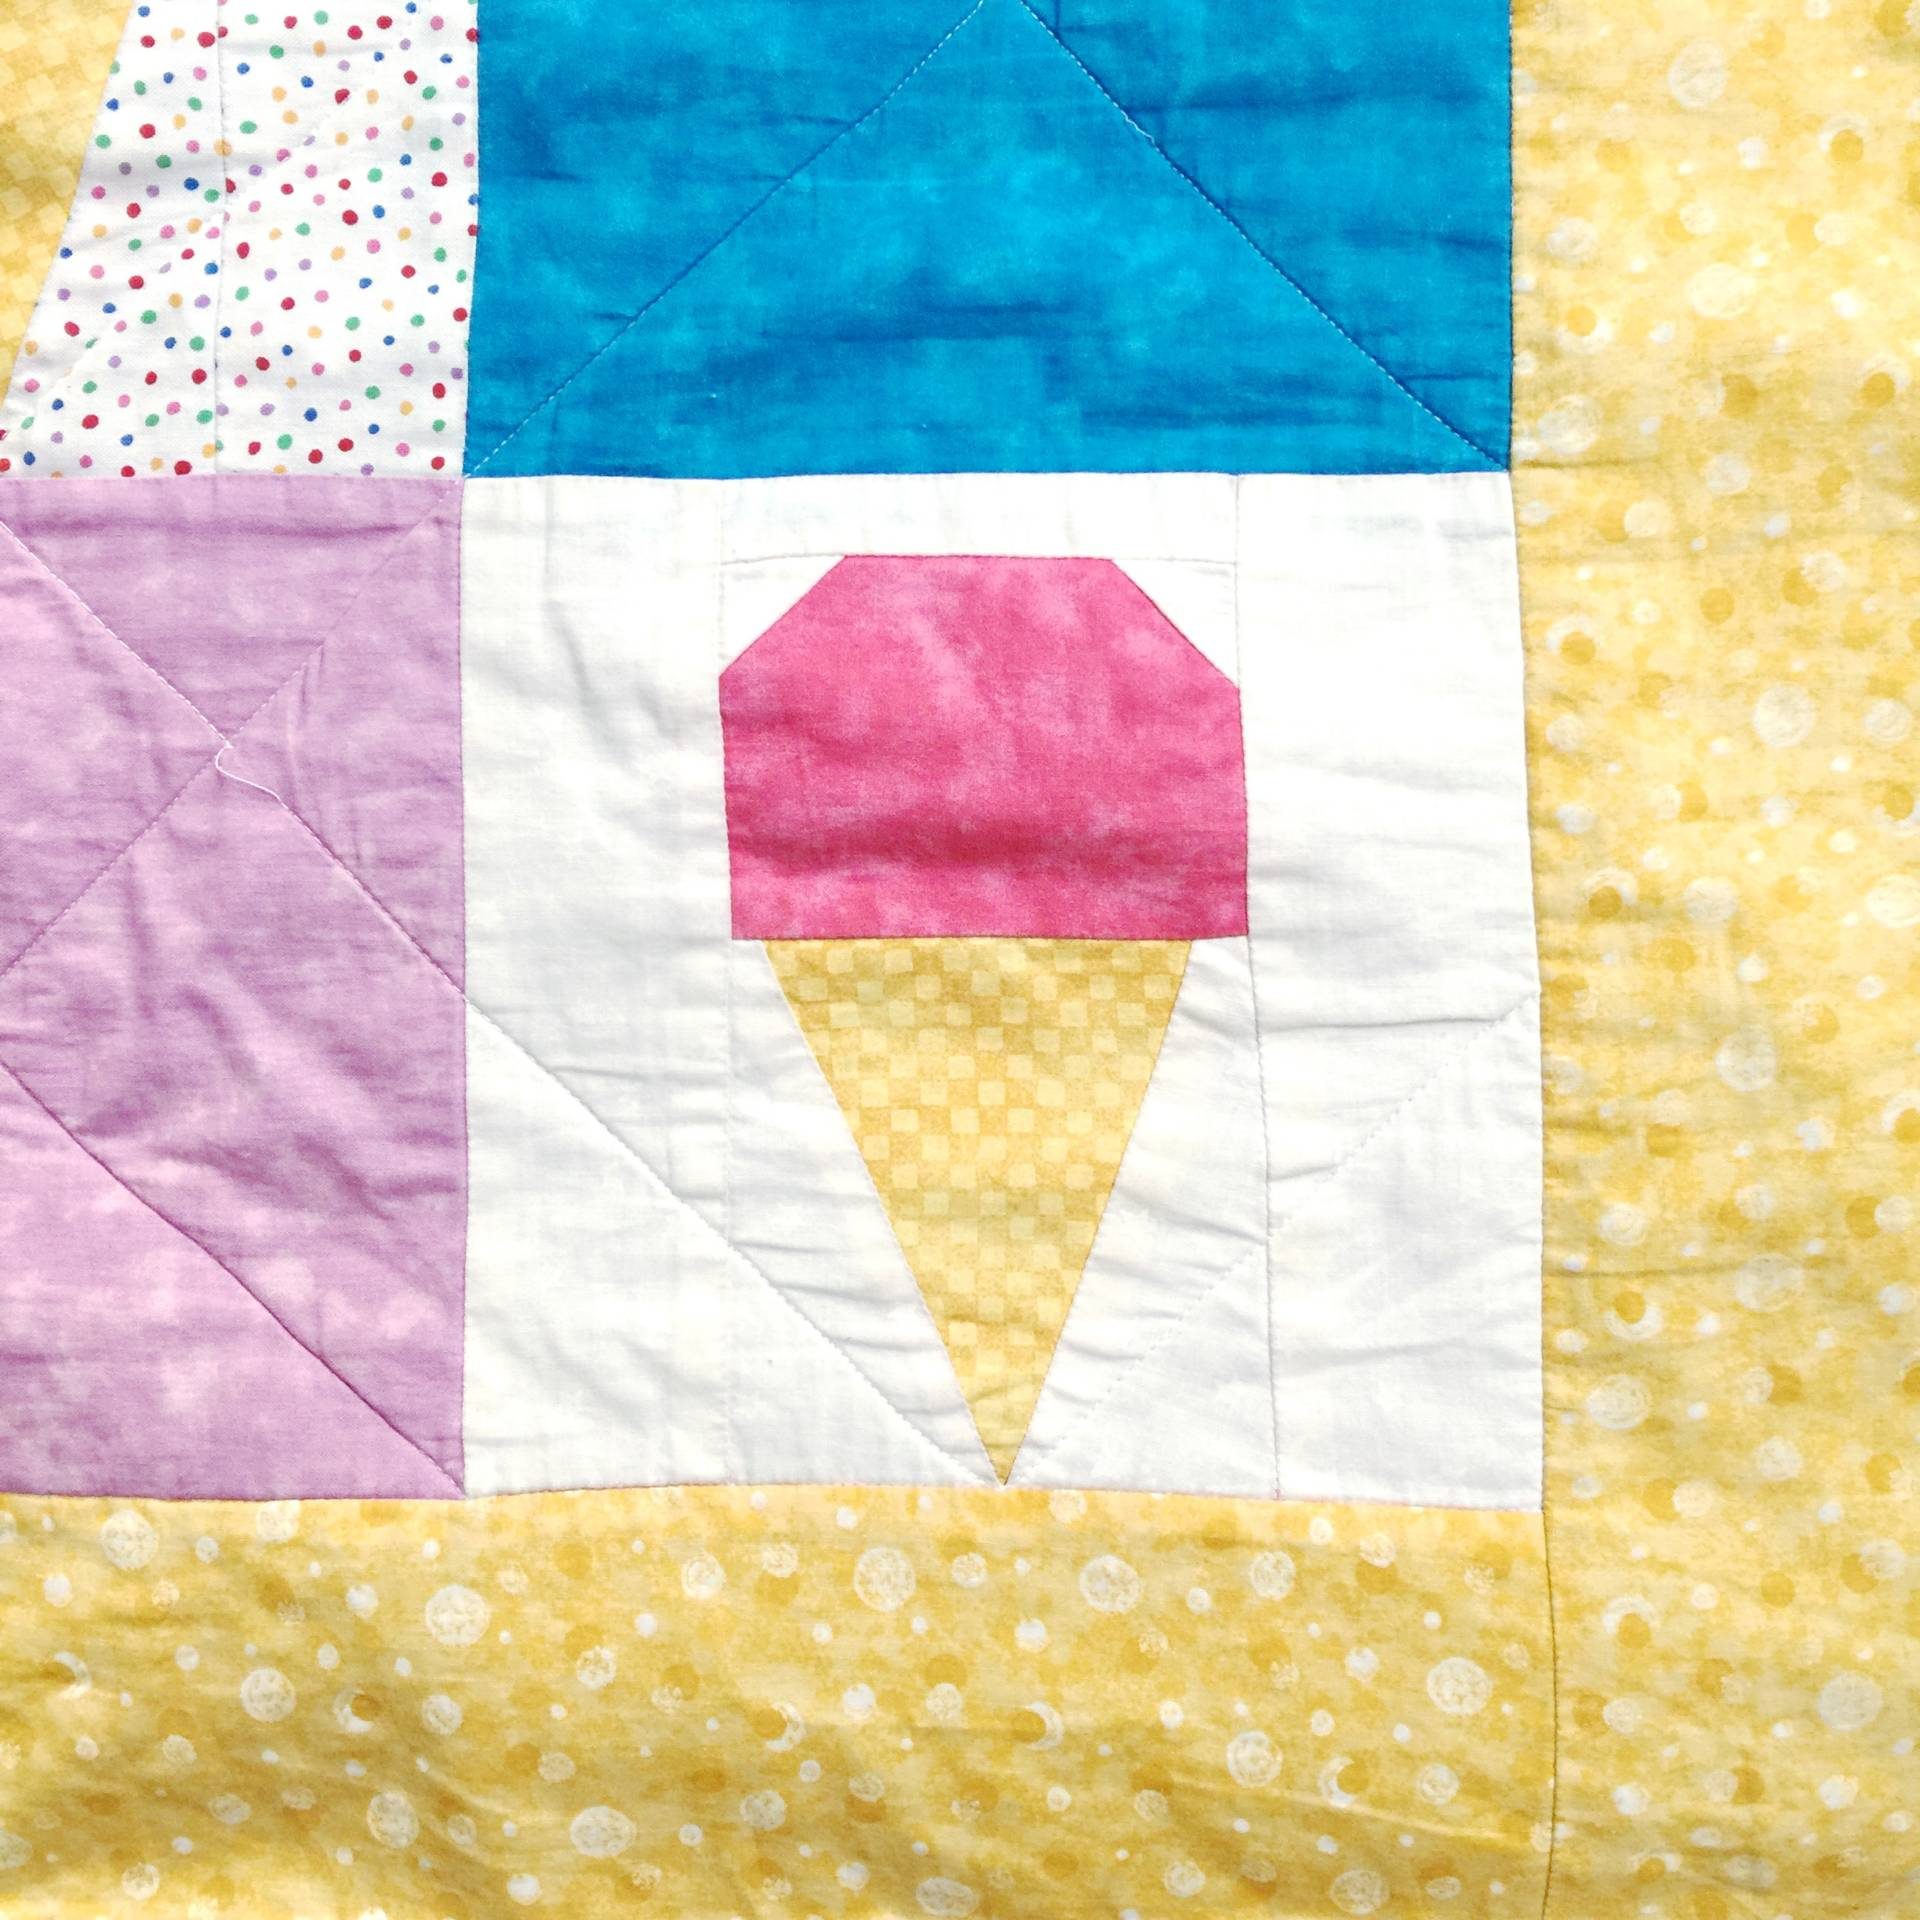 the first and second quilt i made used this ice cream cone pattern, and I still love it 10 years later!